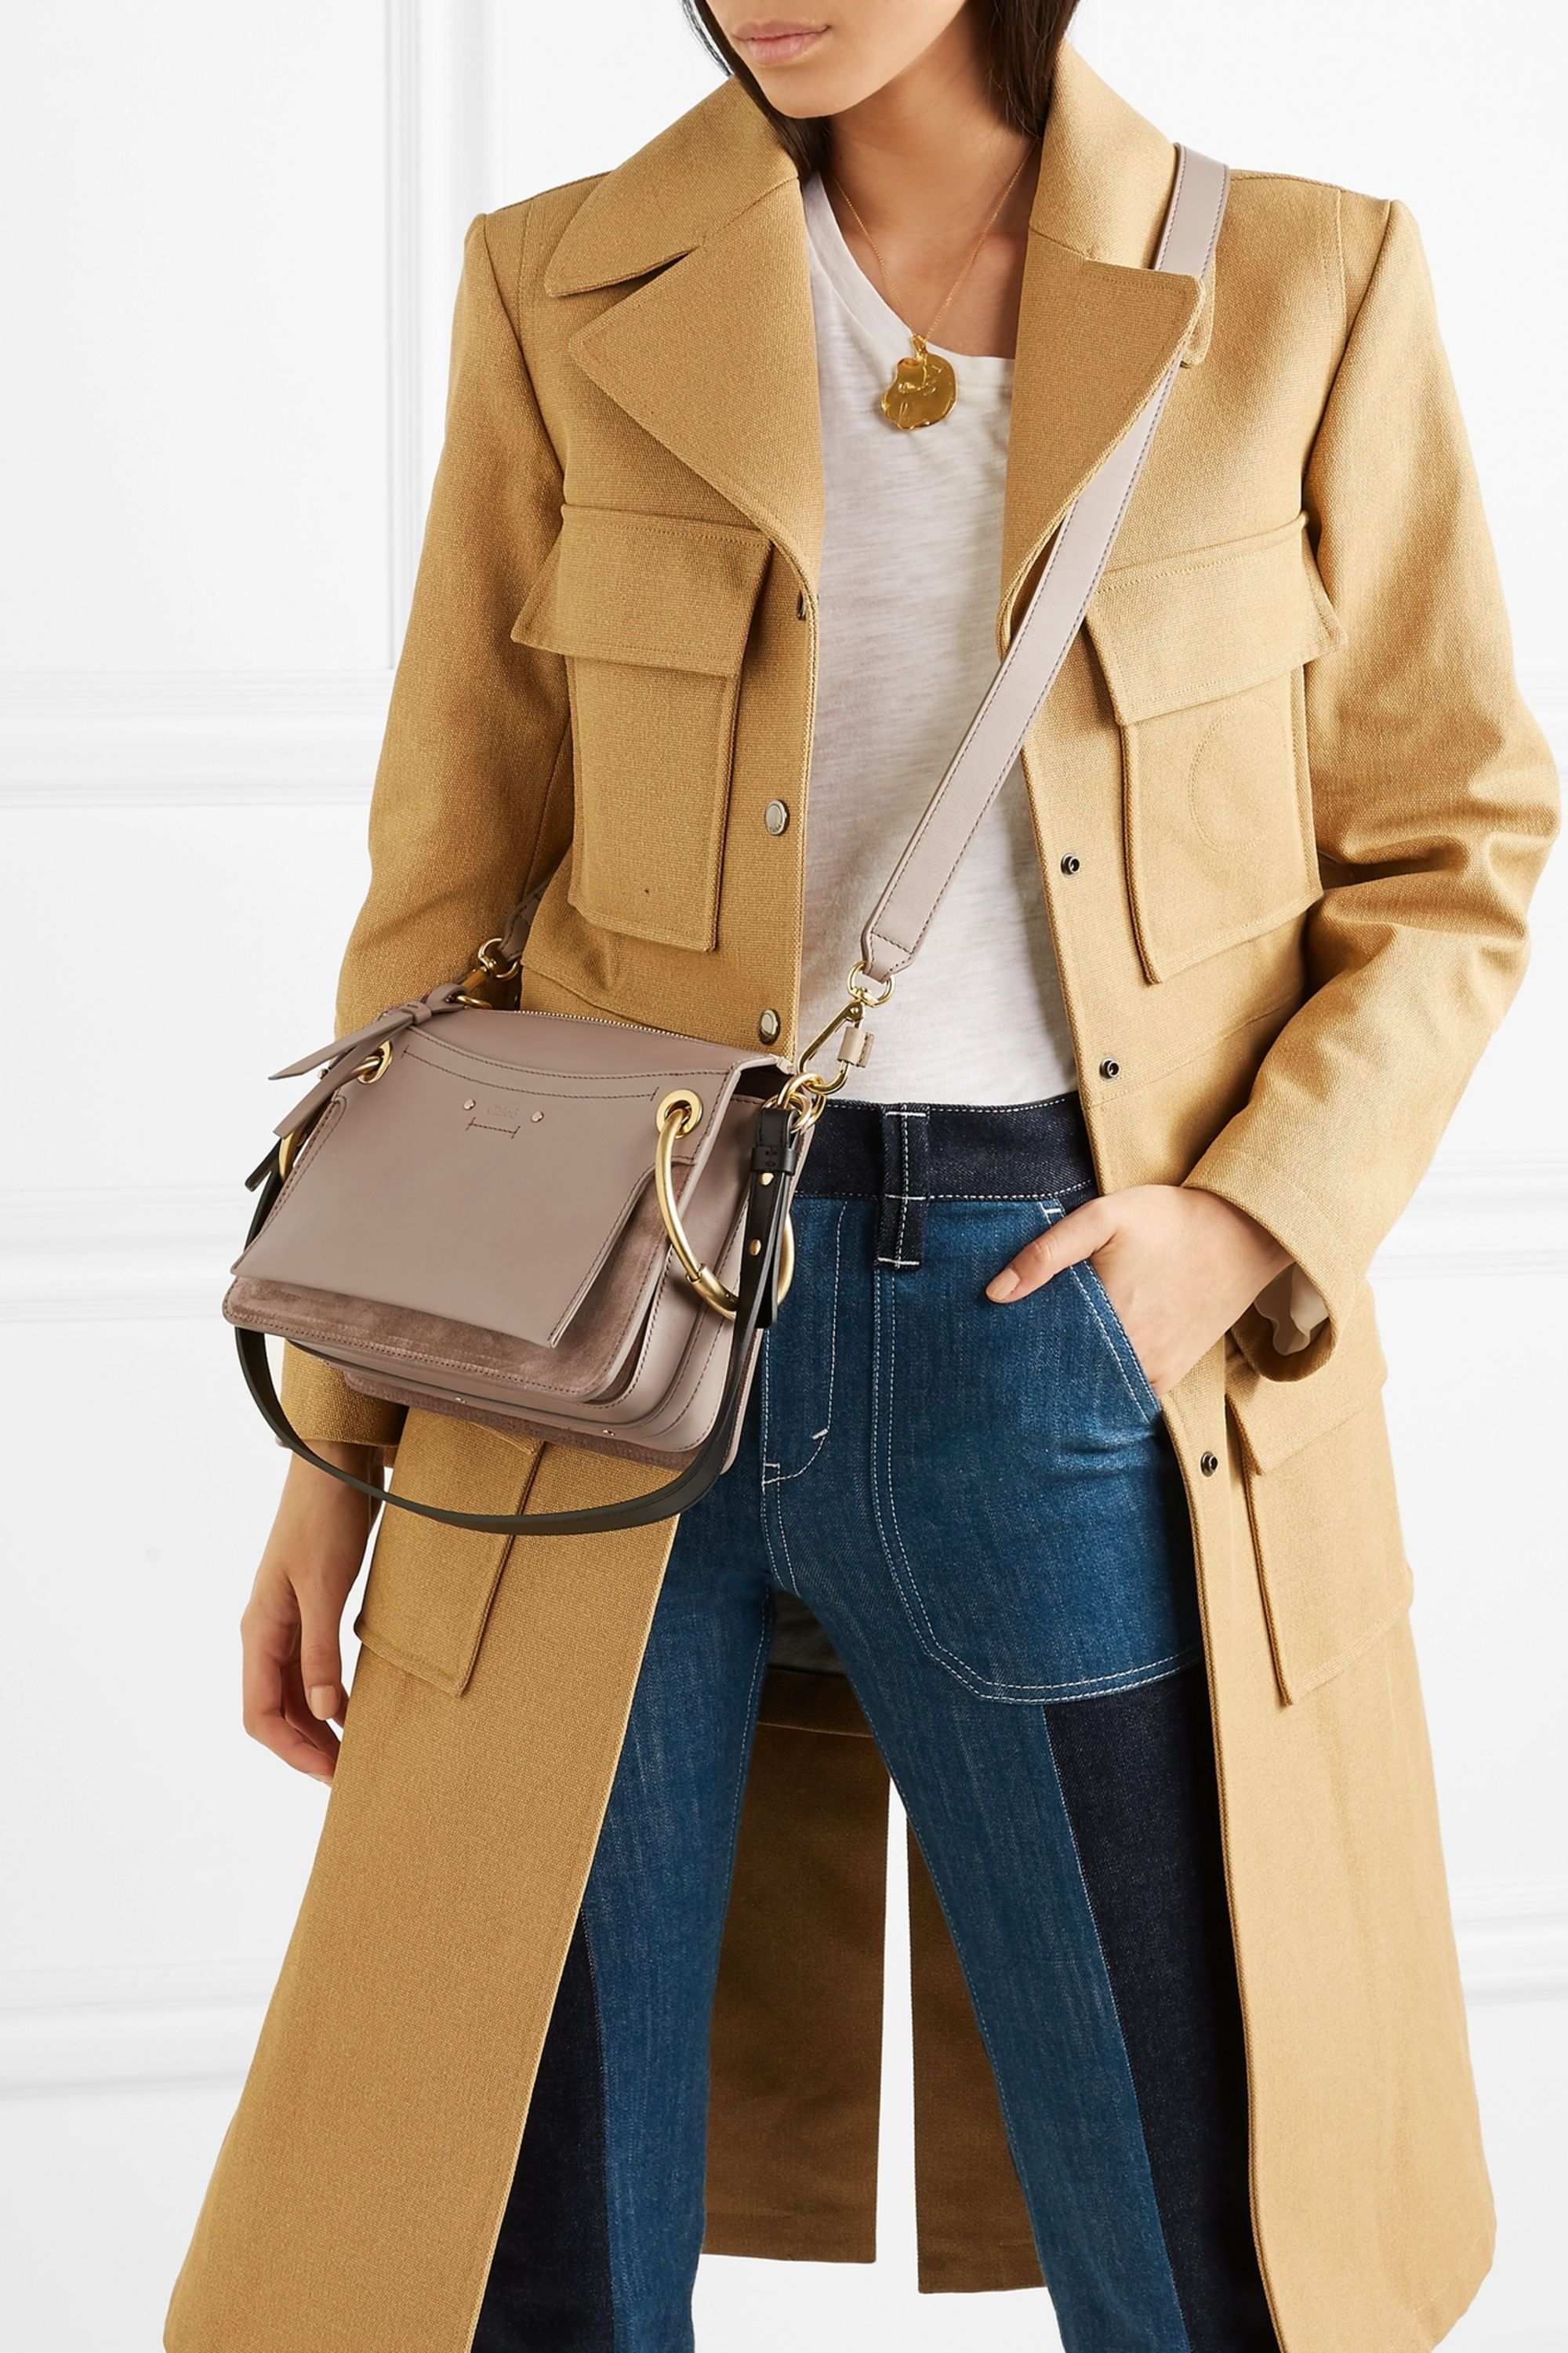 Chloé Roy Day leather and suede shoulder bag